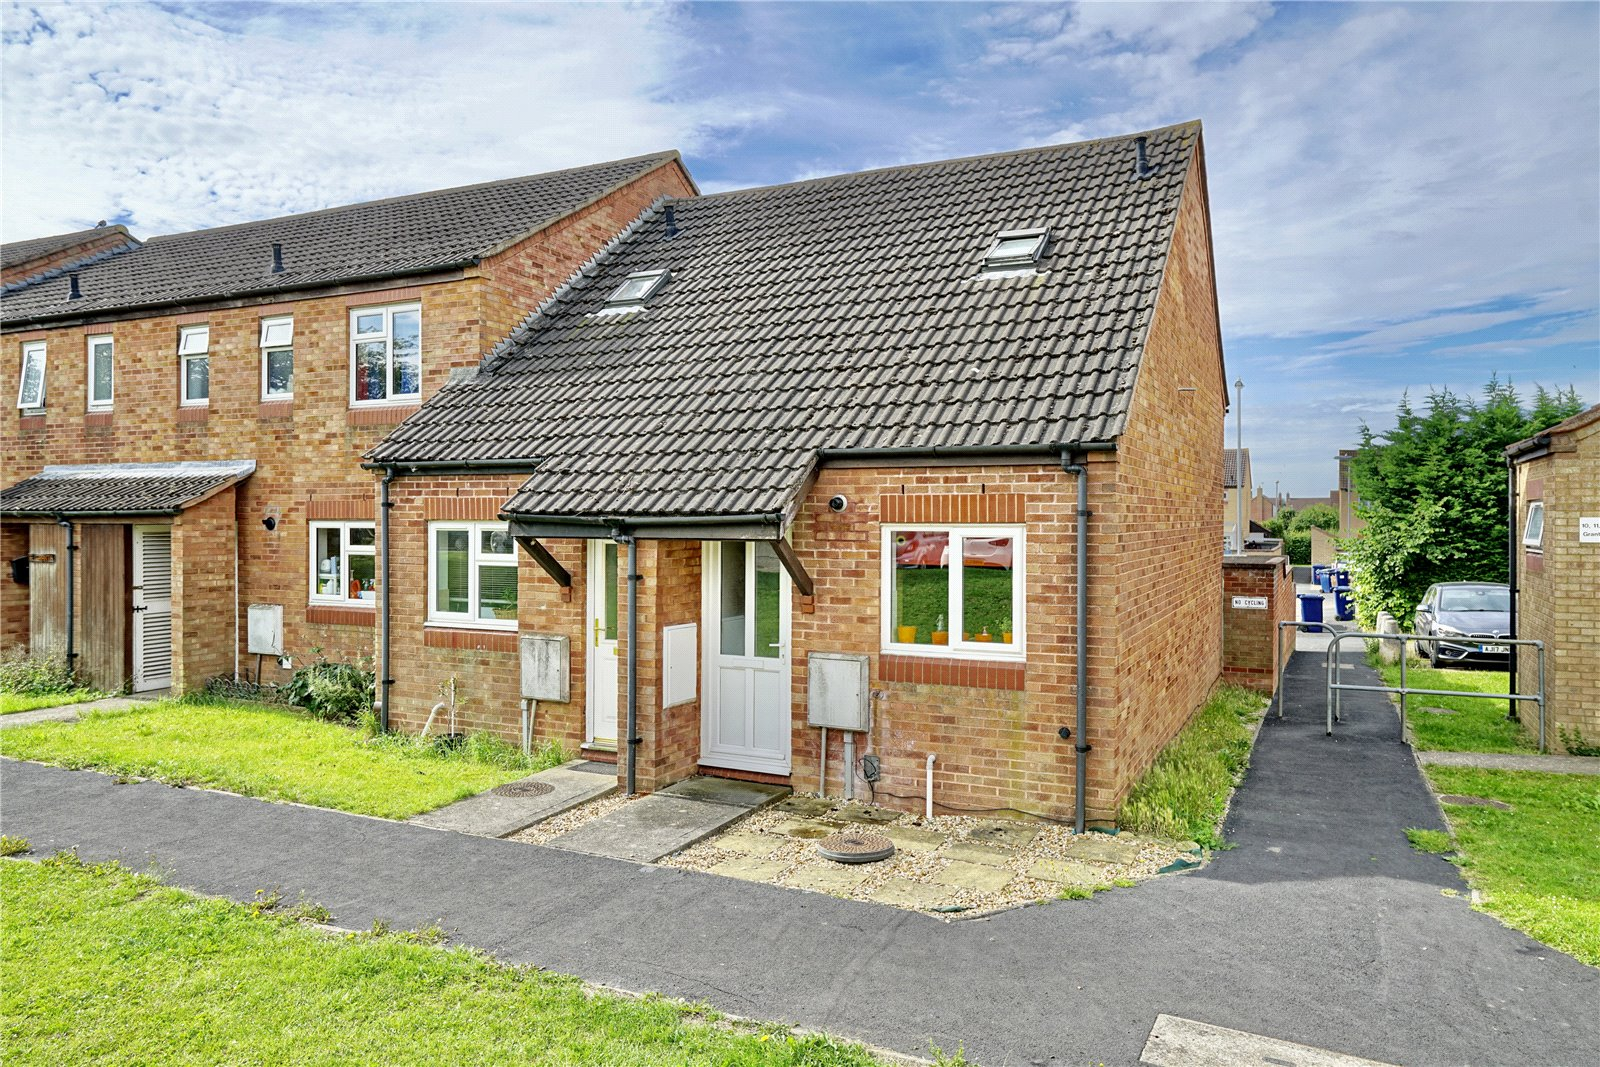 1 bed house for sale in St. Ives, PE27 3EY, PE27